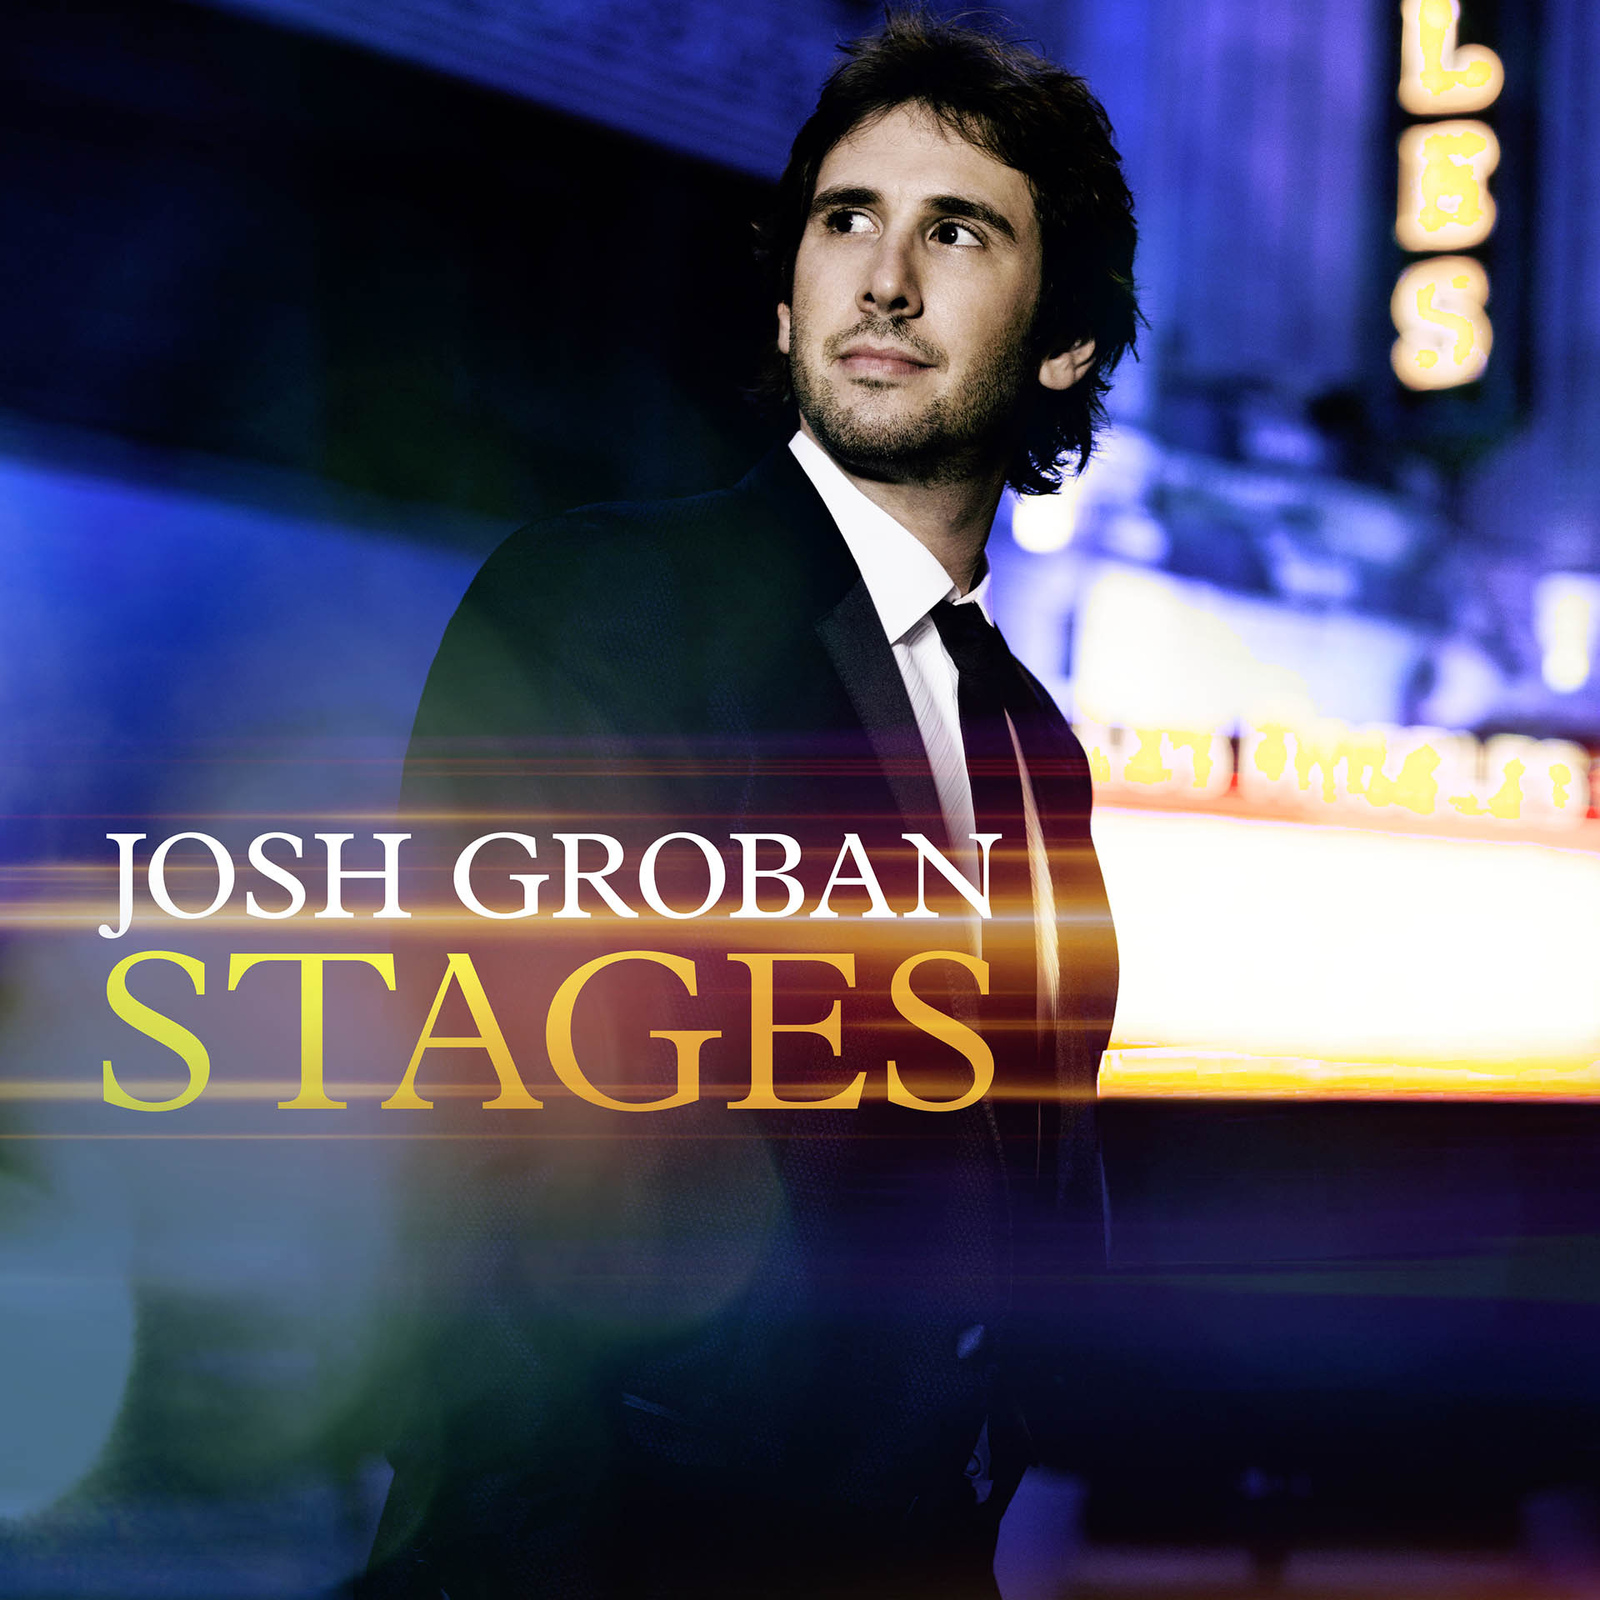 Stages (Deluxe Edition) by Josh Groban image